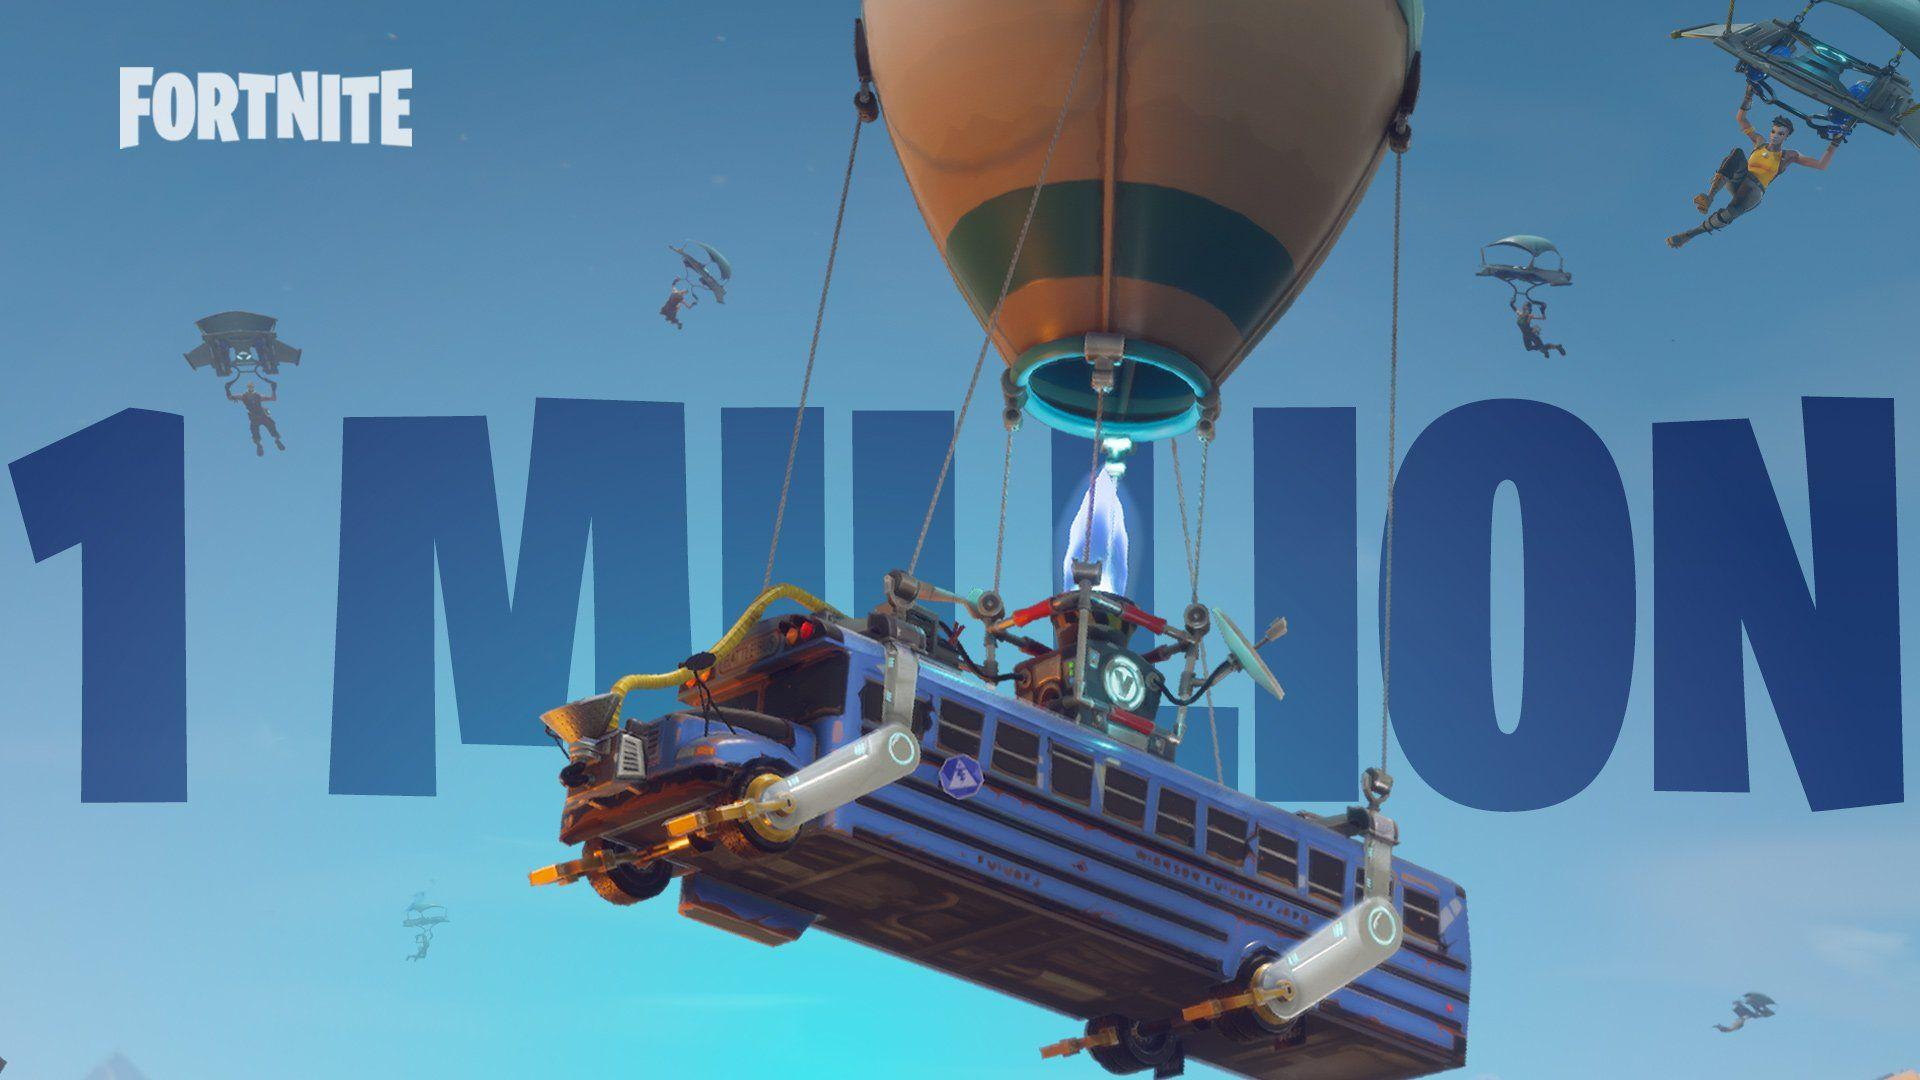 Fortnite: Battle Royale Reaches Over One Million Players in First